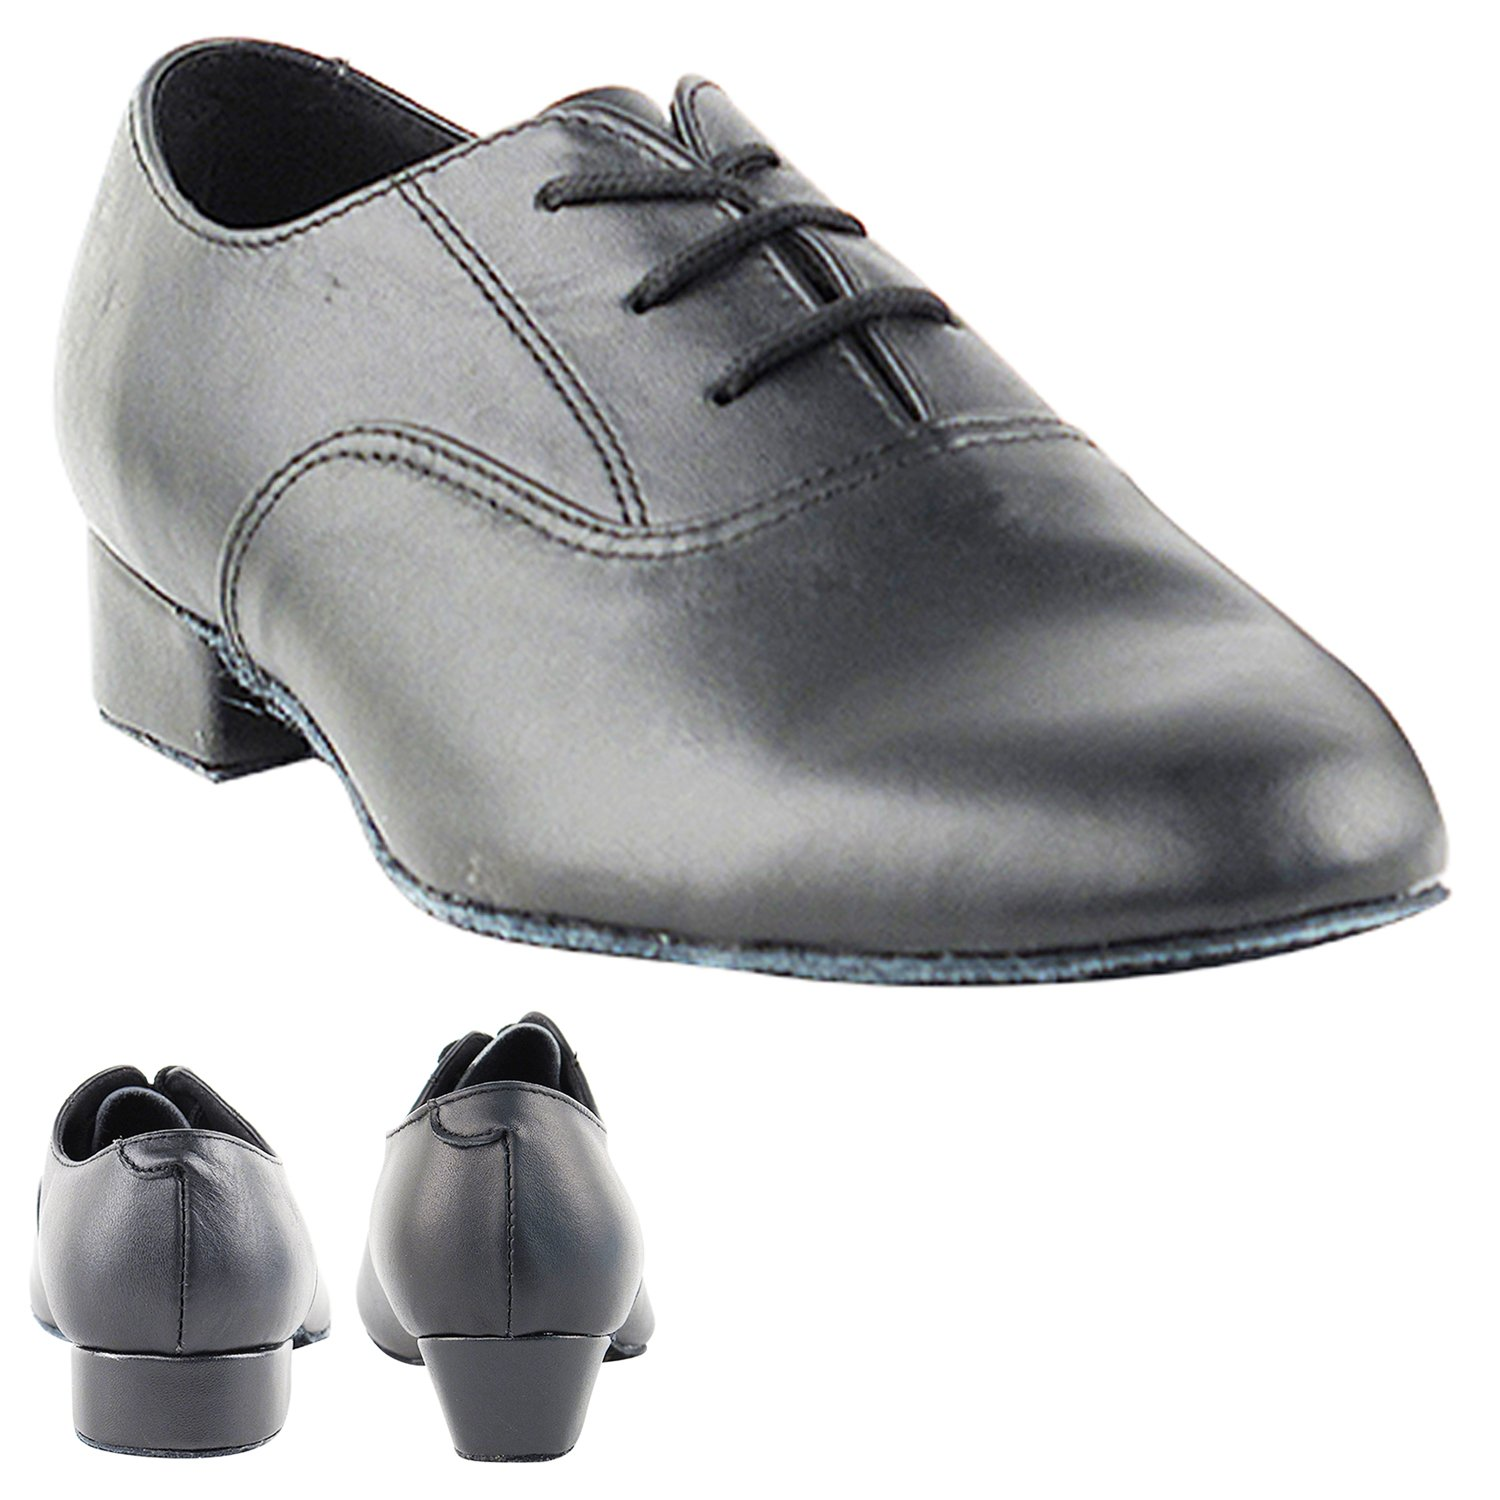 Party Party Boys Ballroom Dance Shoes: 919101B:Black Leather:1'' Heel:Boys Size 3